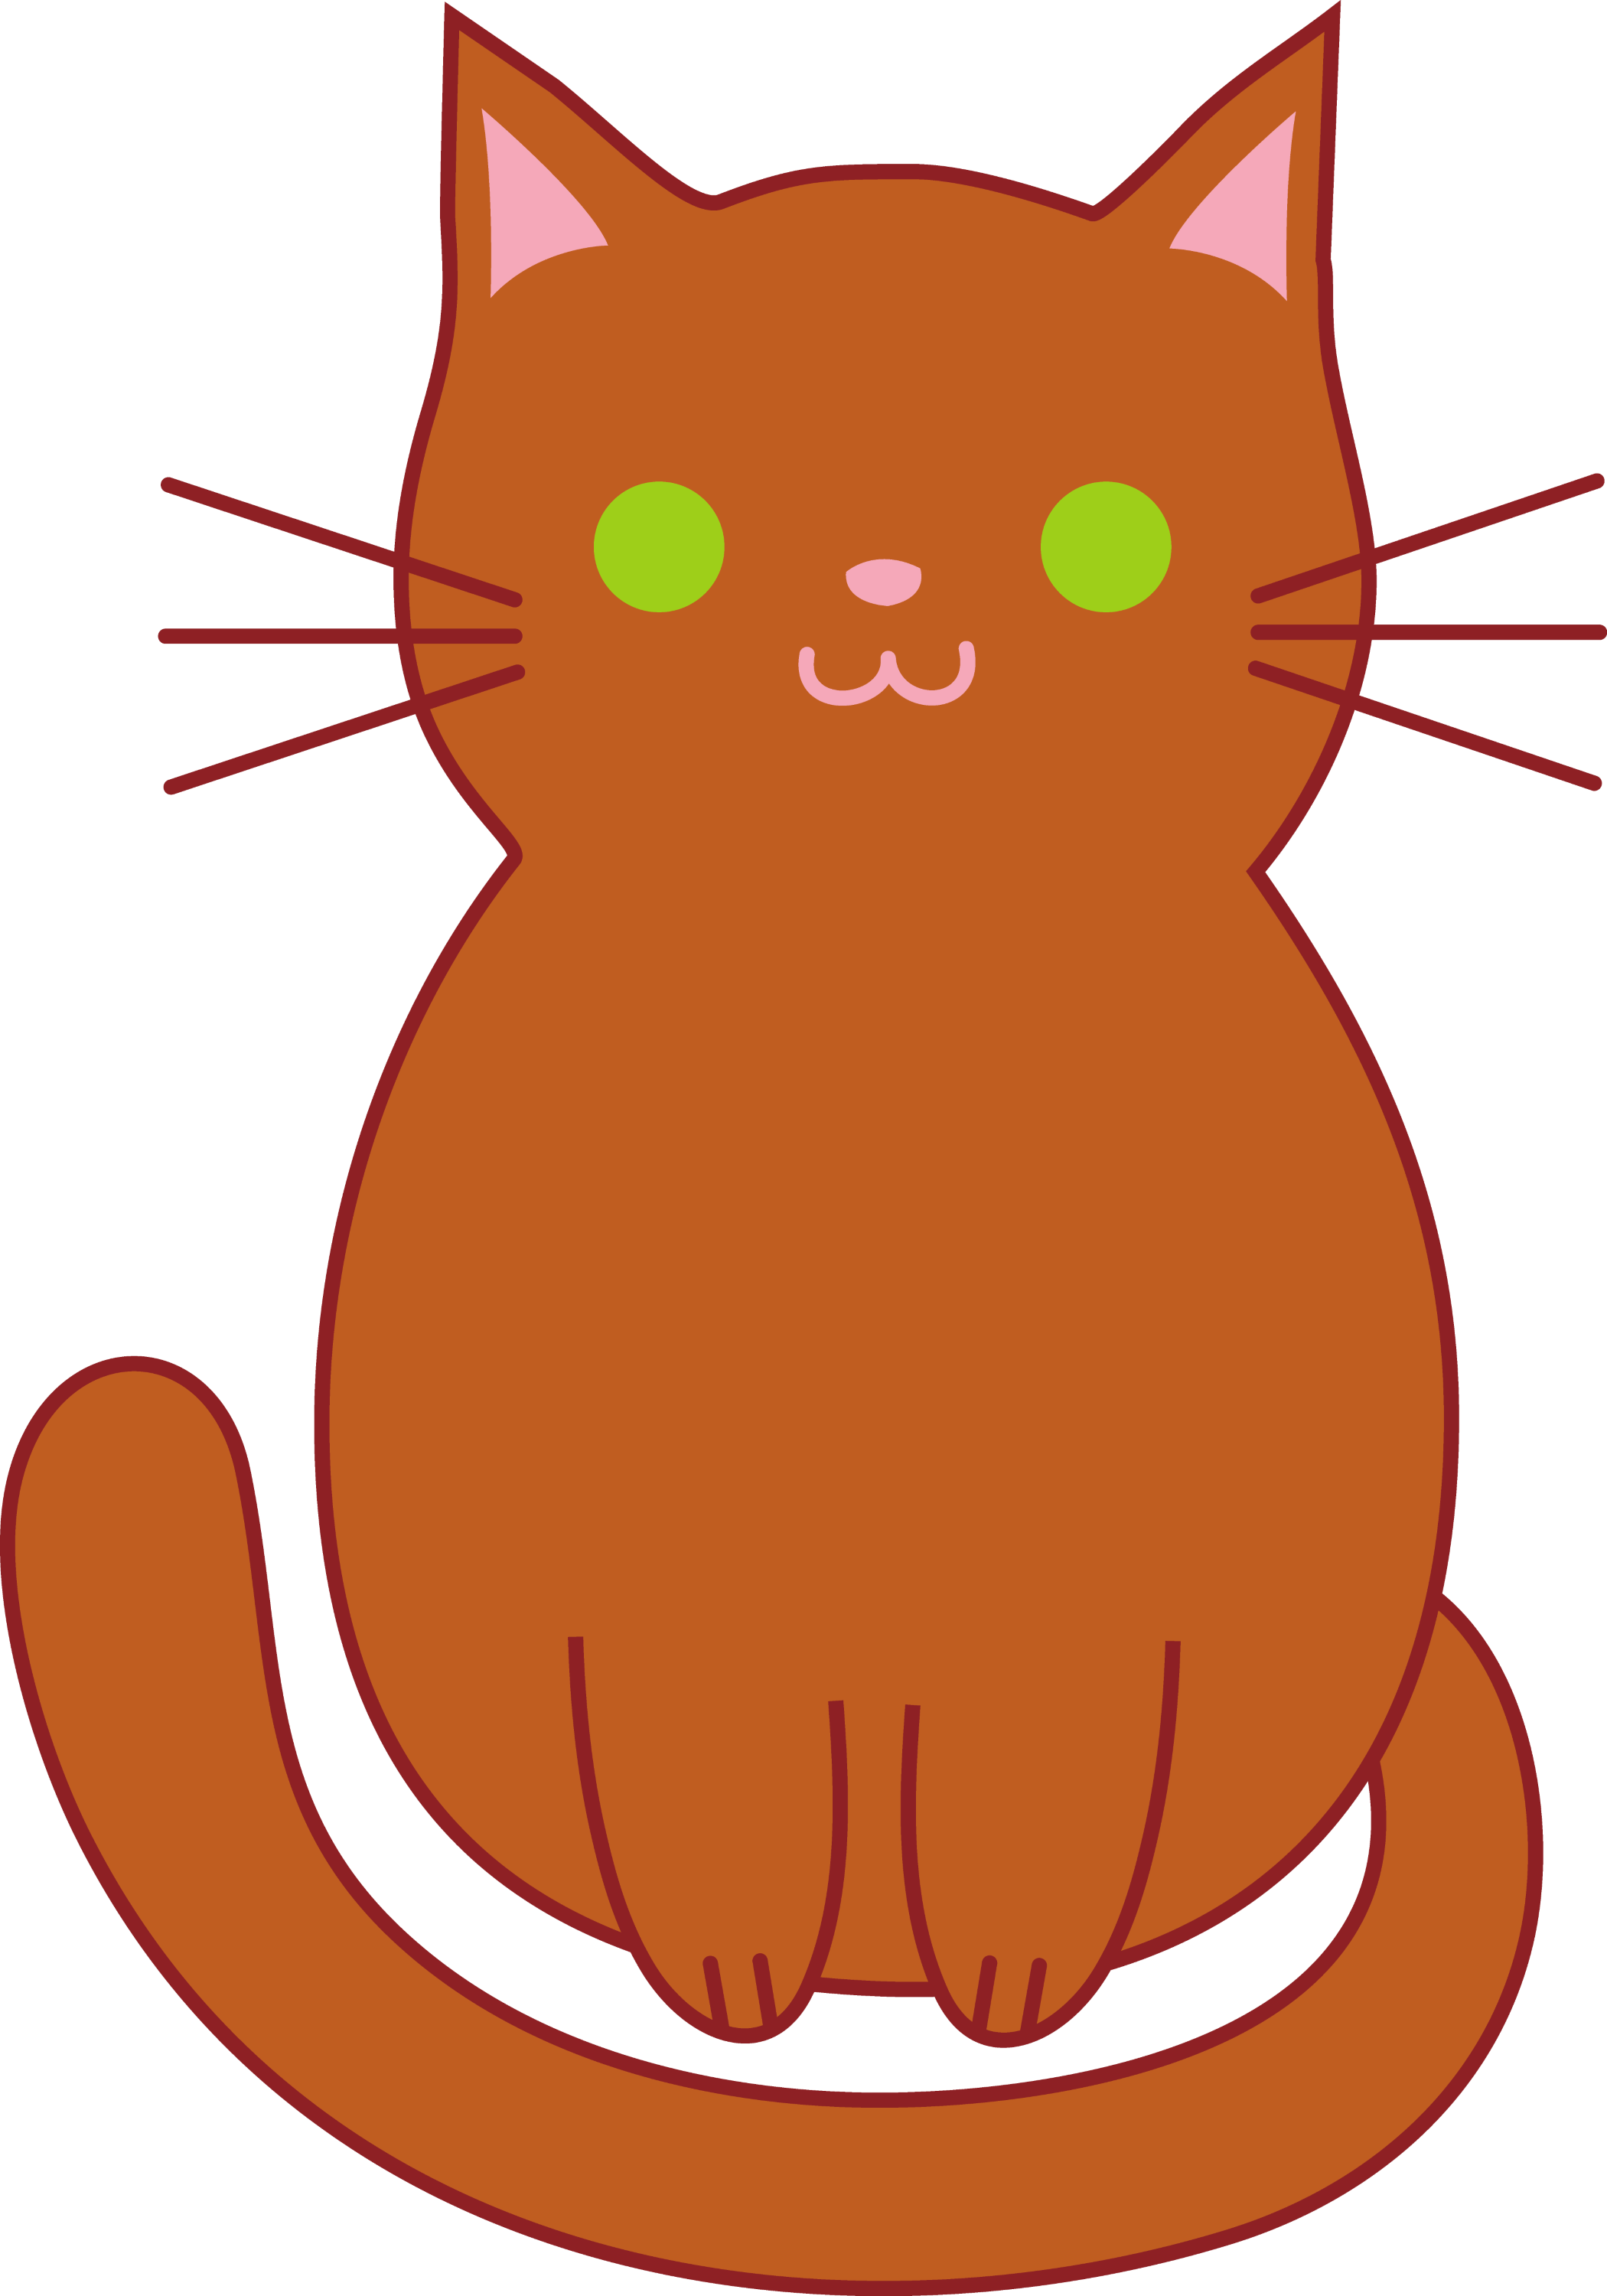 cute brown cat free clip art rh sweetclipart com Kitten Outline Cute Baby Kittens